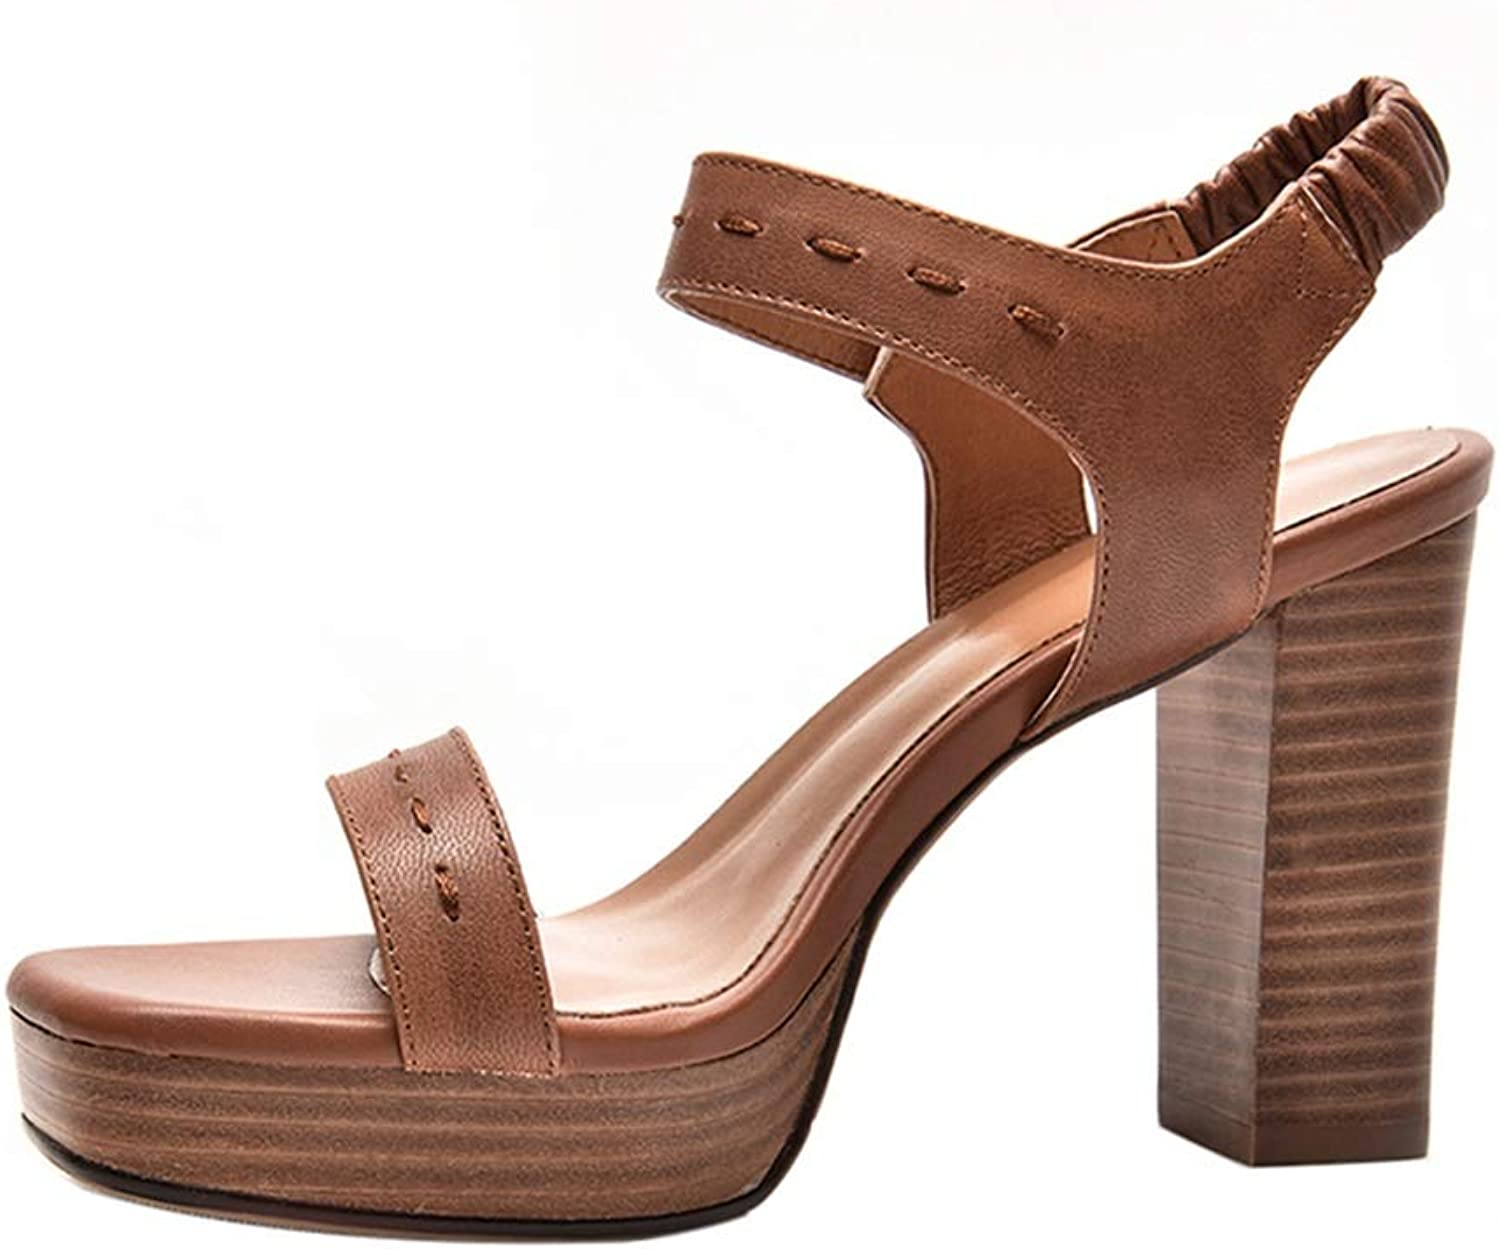 Sandals High Heel Velcro Waterproof Platform Roman shoes Summer Open Toe shoes (color   Brown, Size   37)